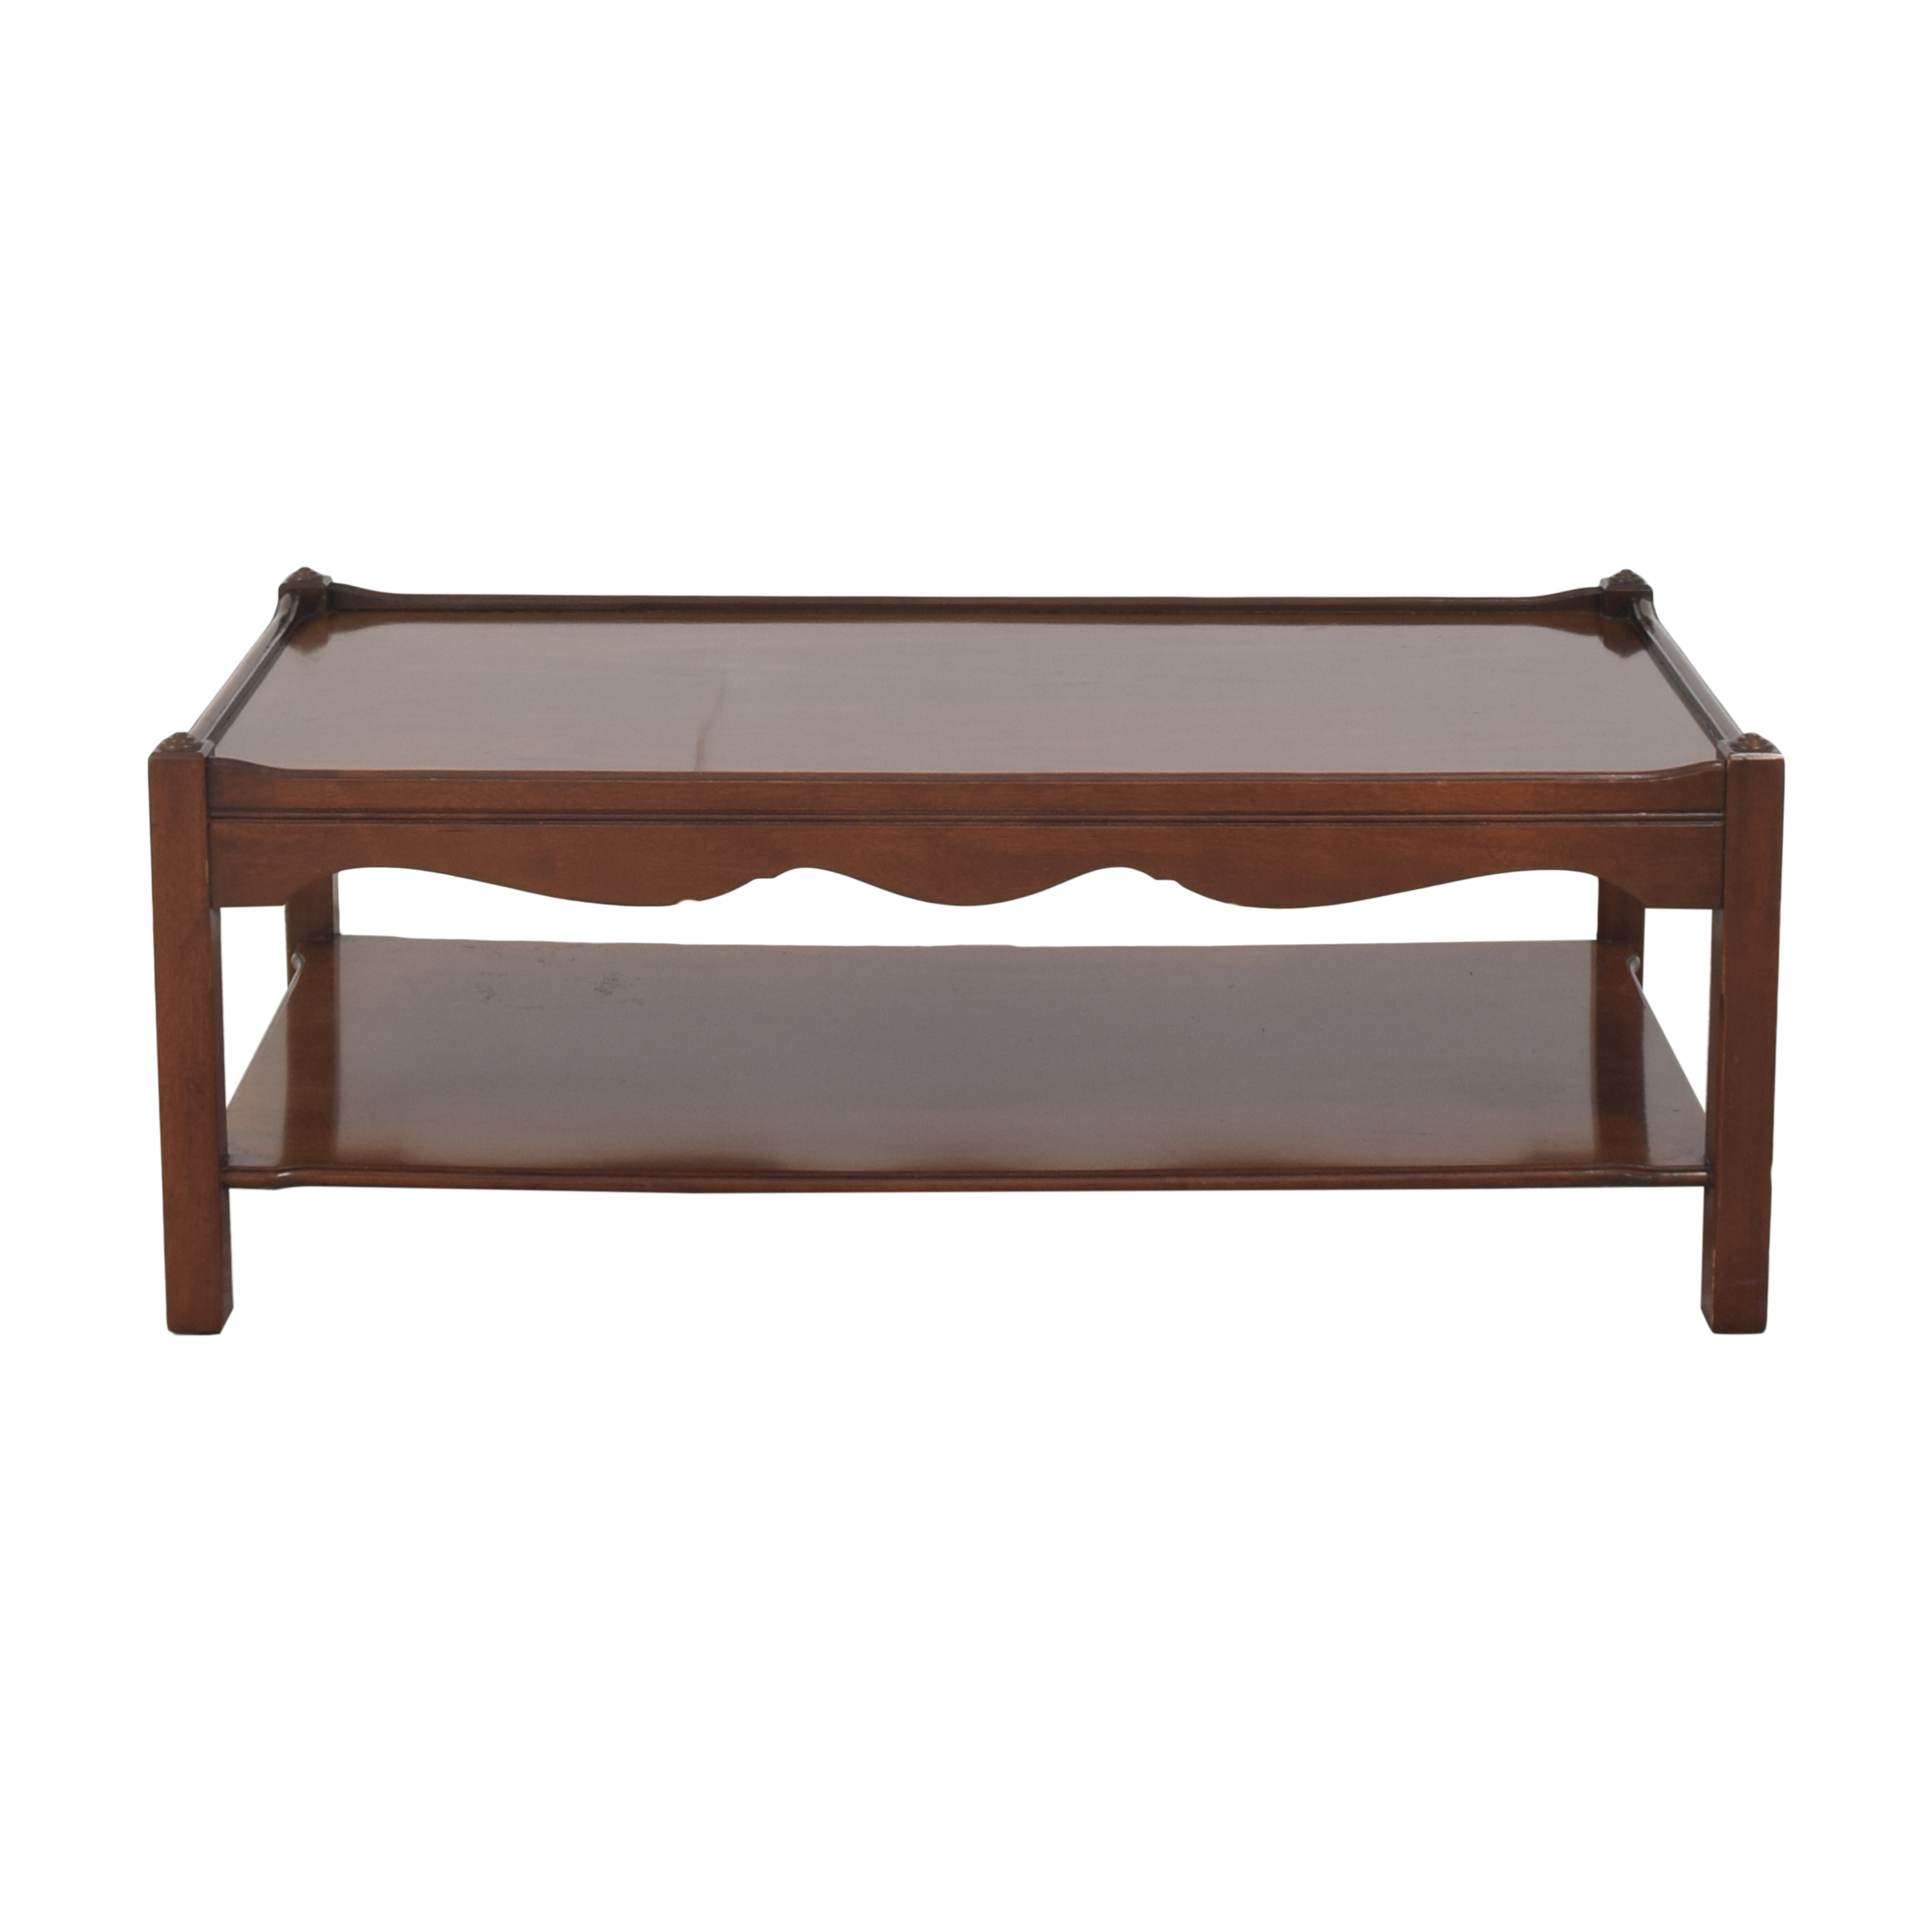 Macy's Macy's Tiered Coffee Table second hand